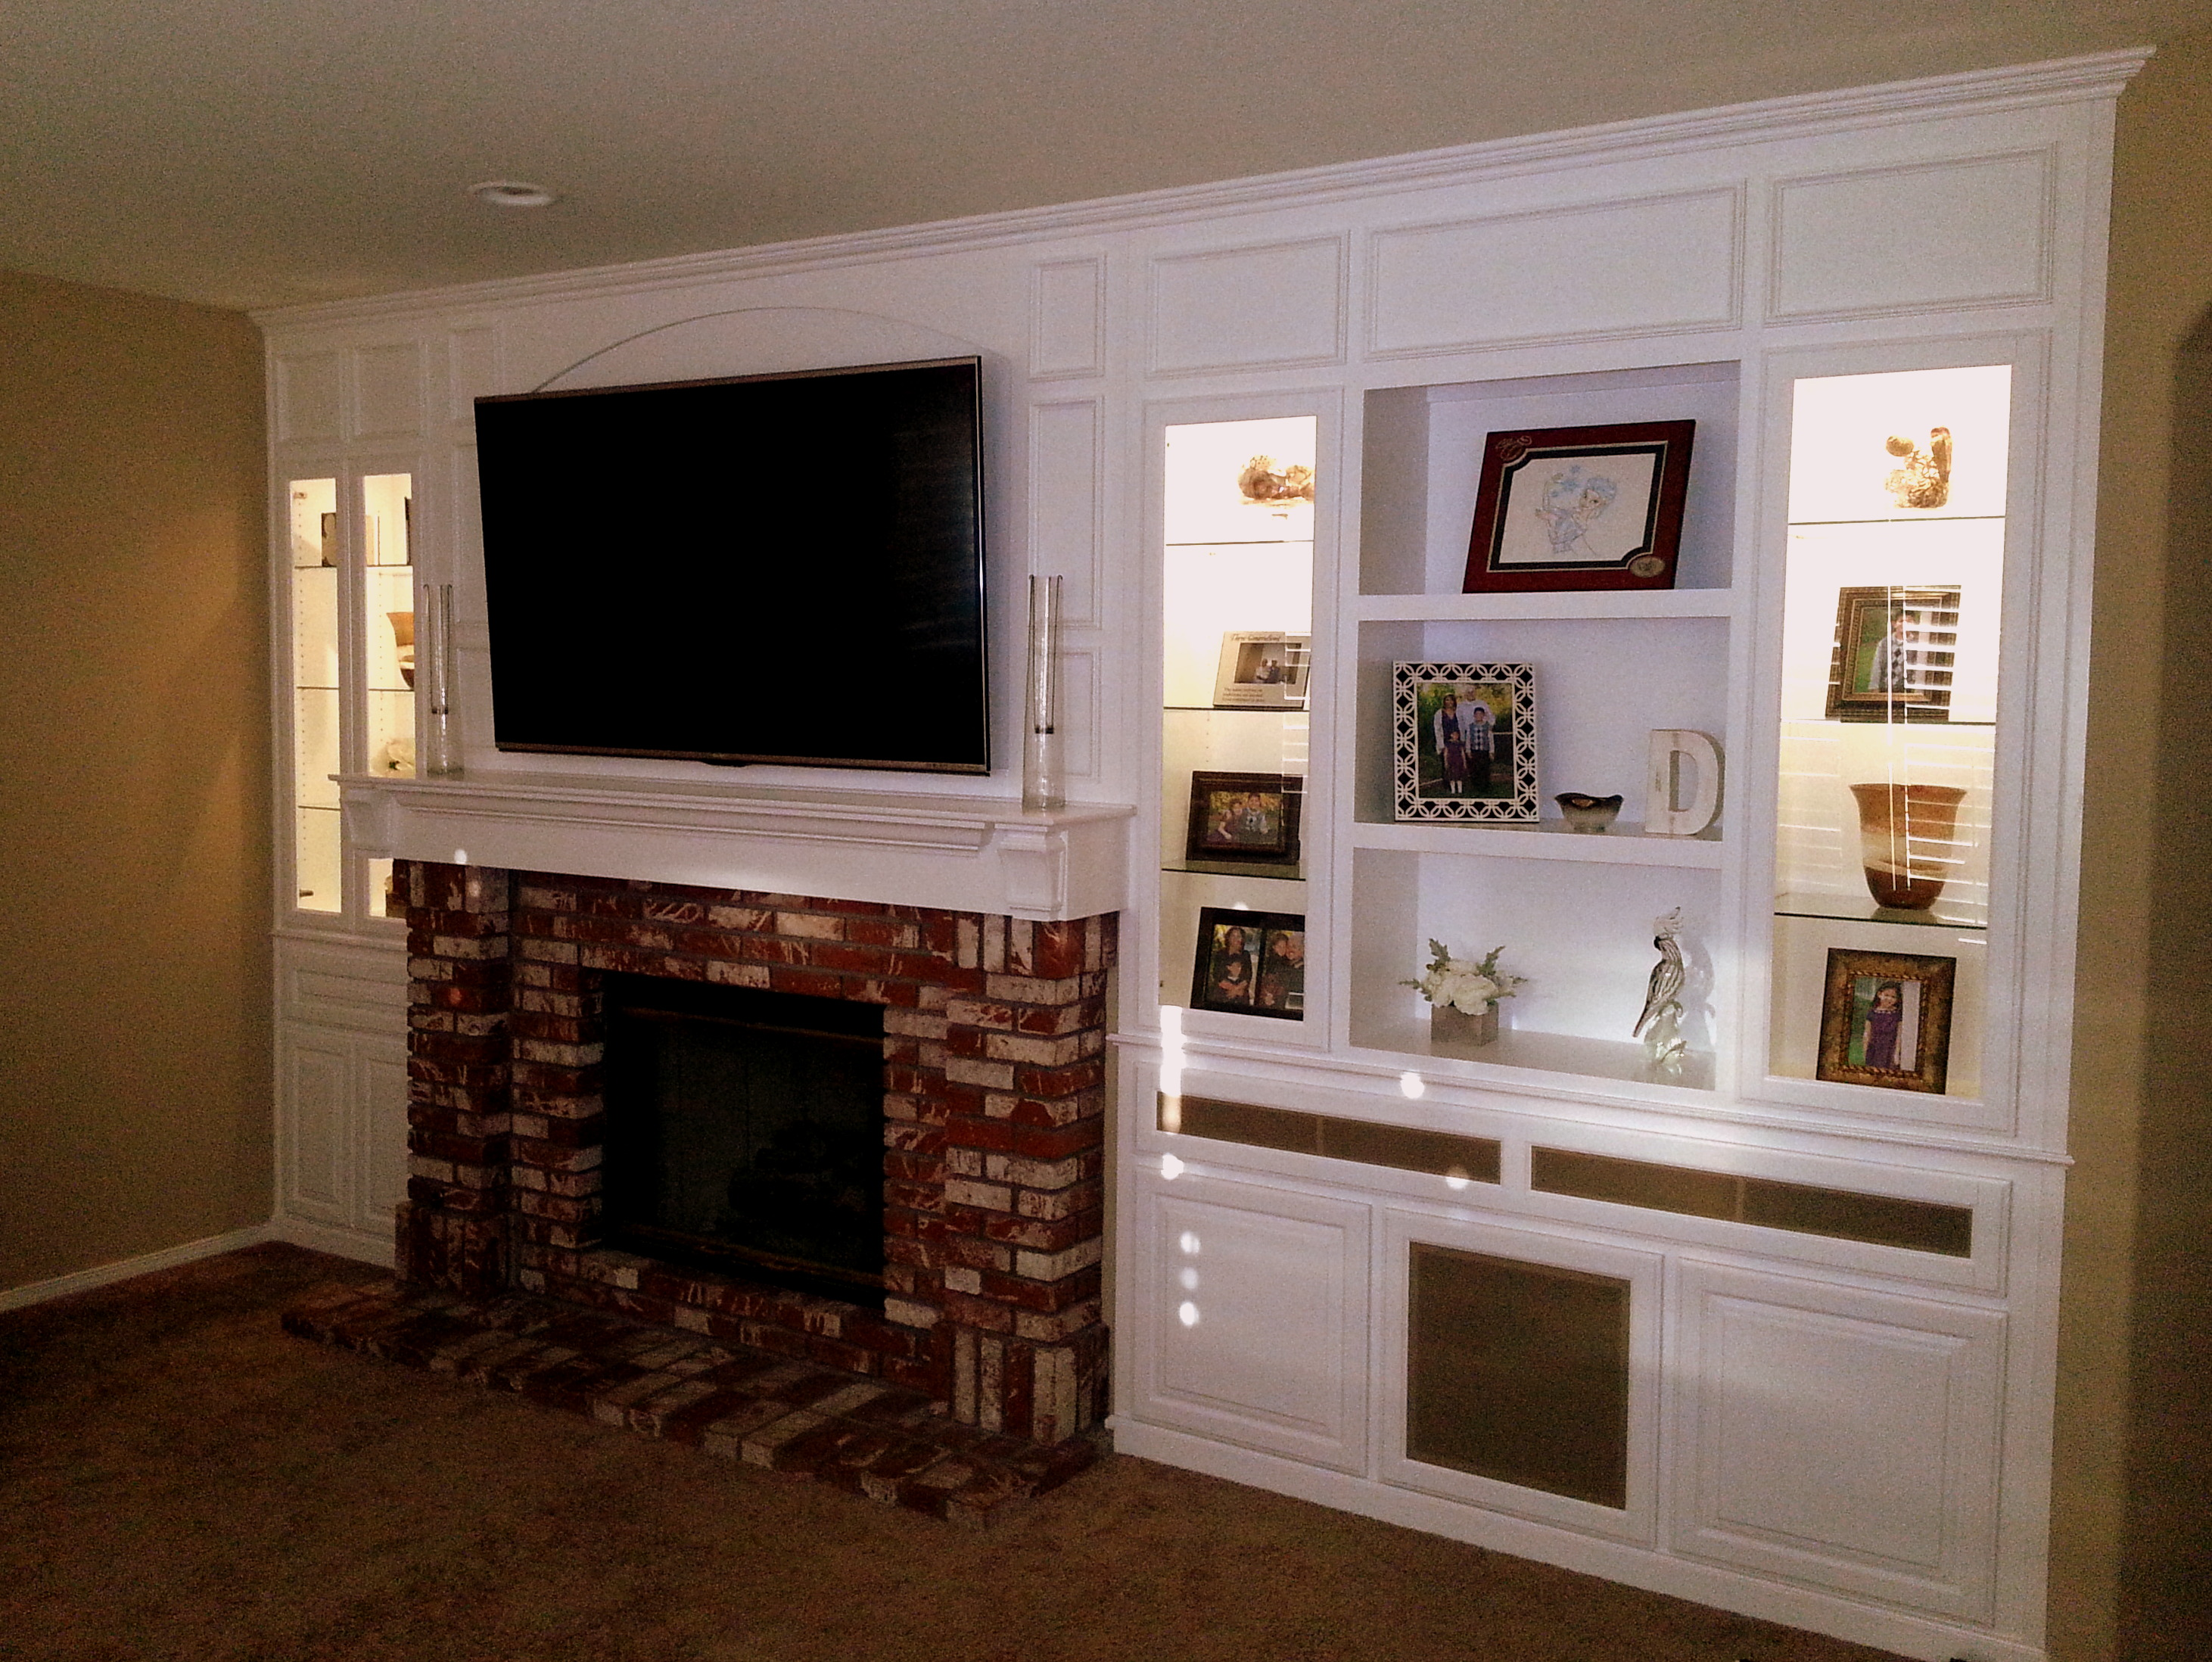 Built in cabinets with TV over fireplace